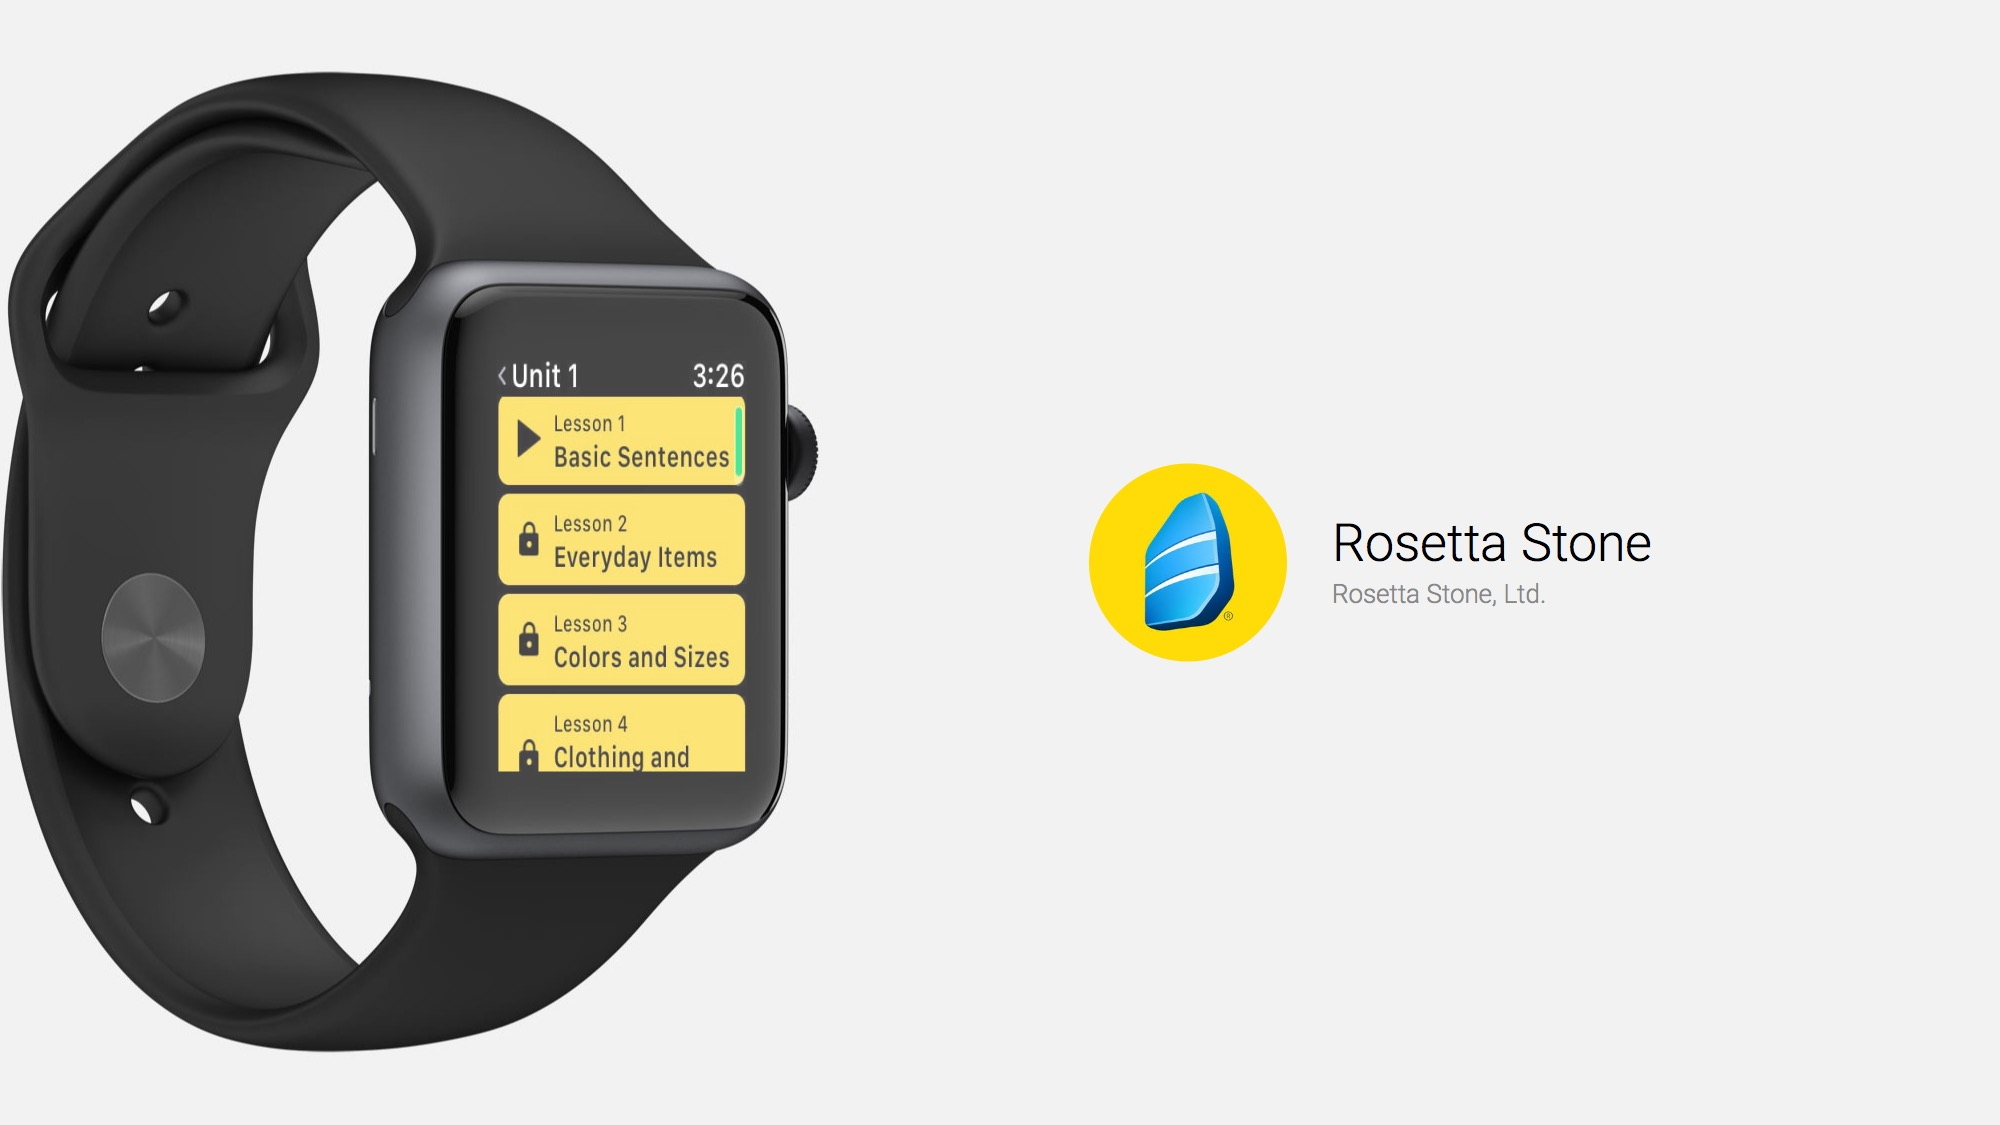 Rosetta Stone and Apple Watch Are a Great Match